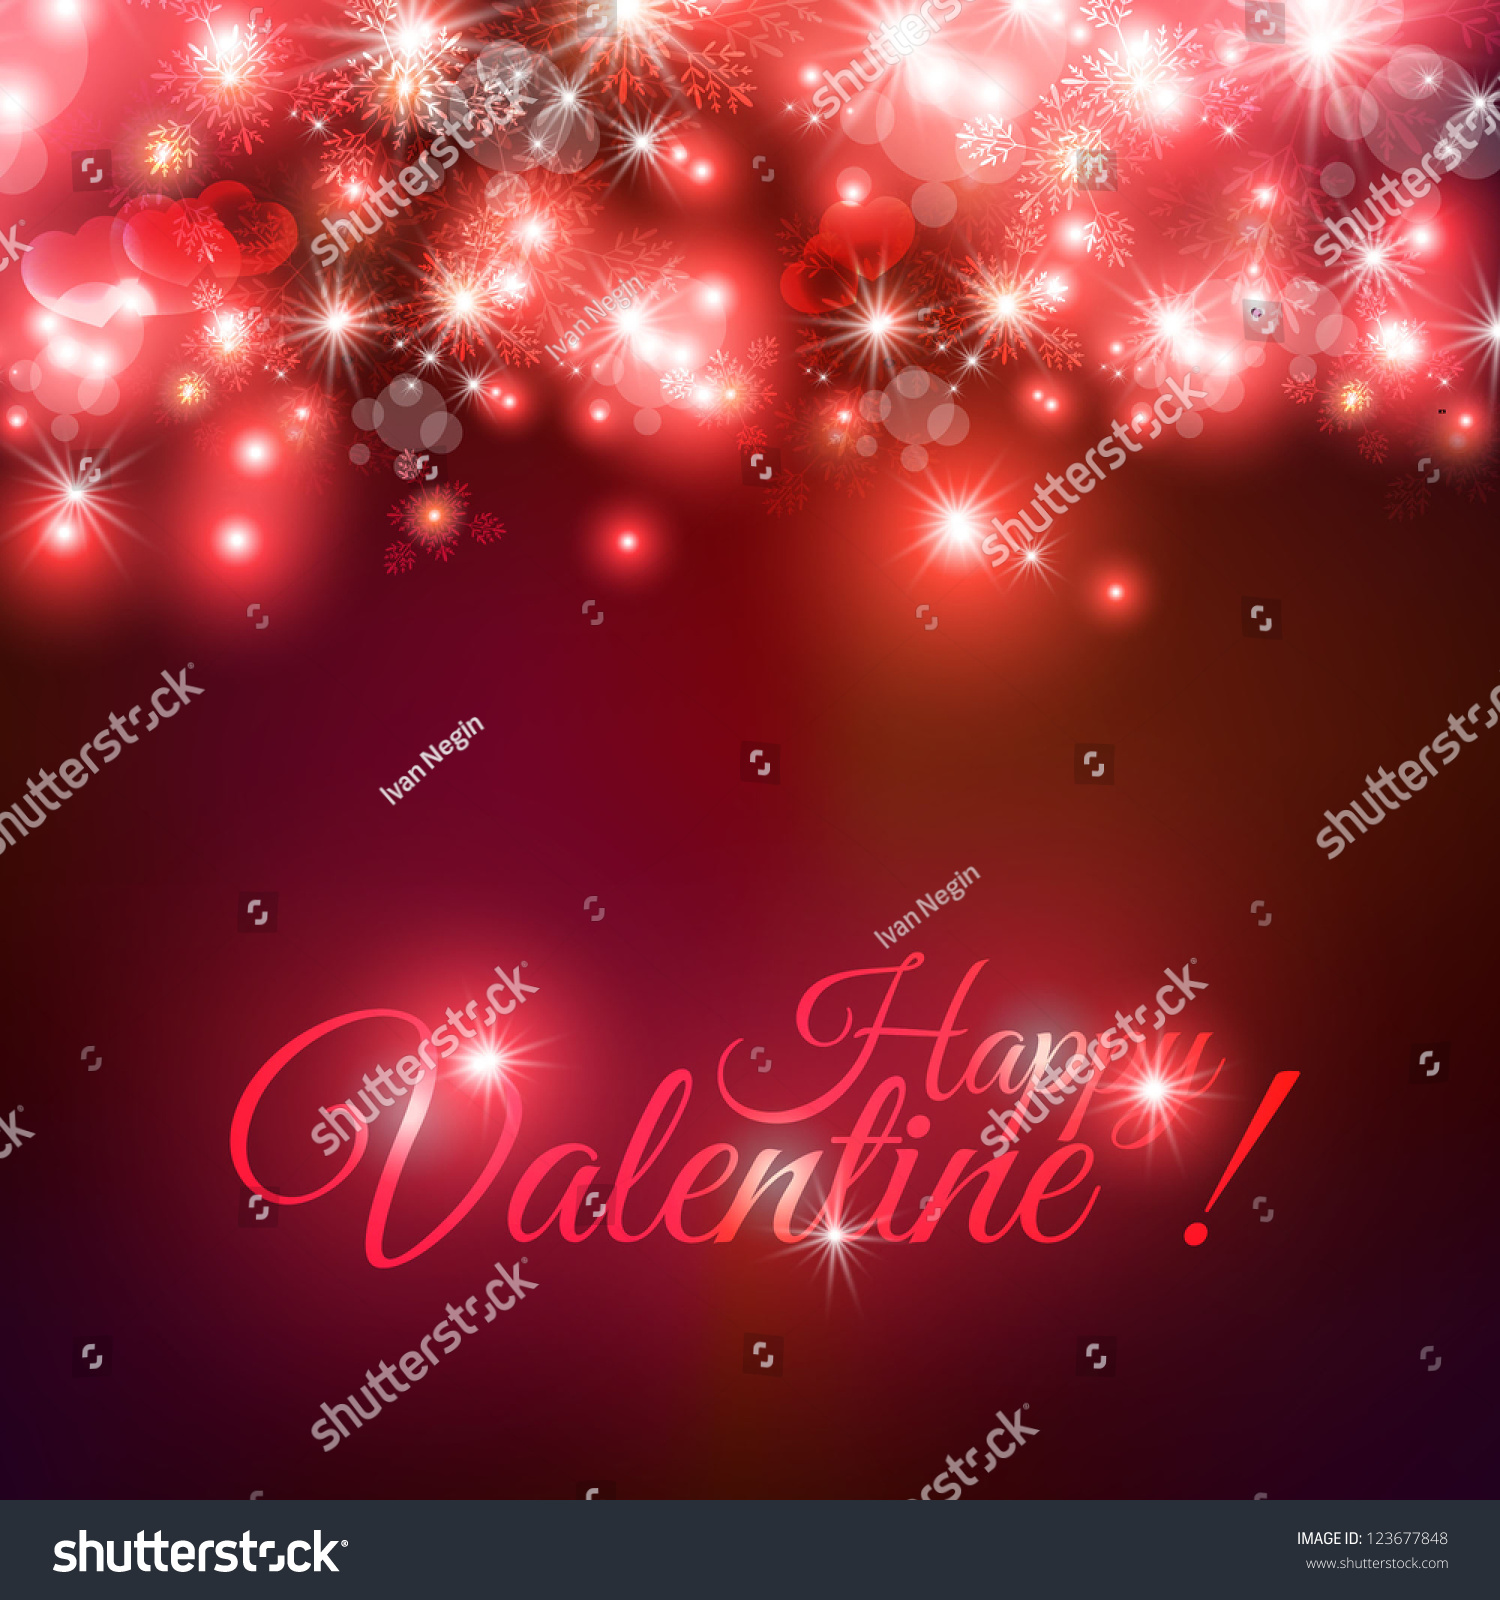 Valentine Wedding Card Invitation Abstract Floral Stock Vector ...